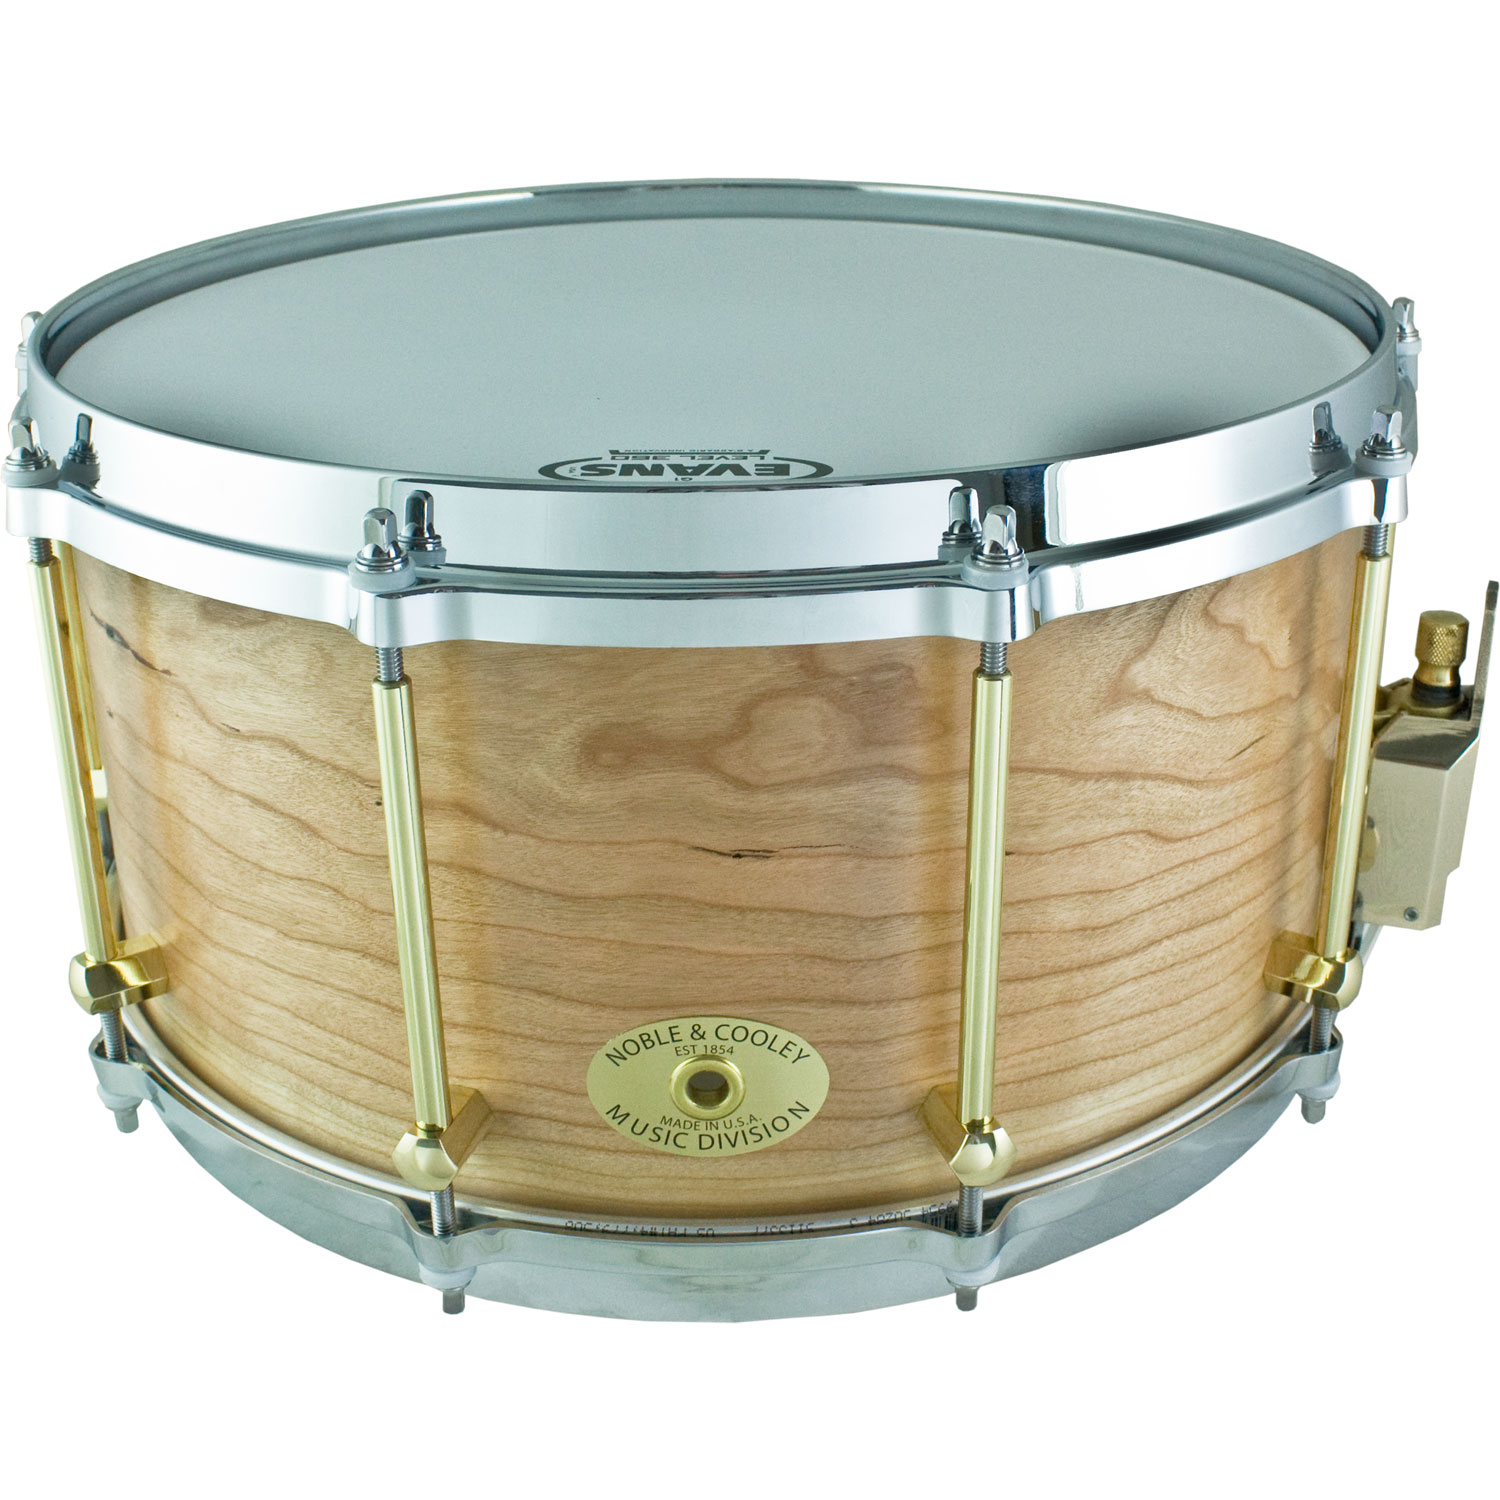 "Noble & Cooley 7"" x 14"" Classic Solid Shell Cherry Snare Drum in Natural Oil"